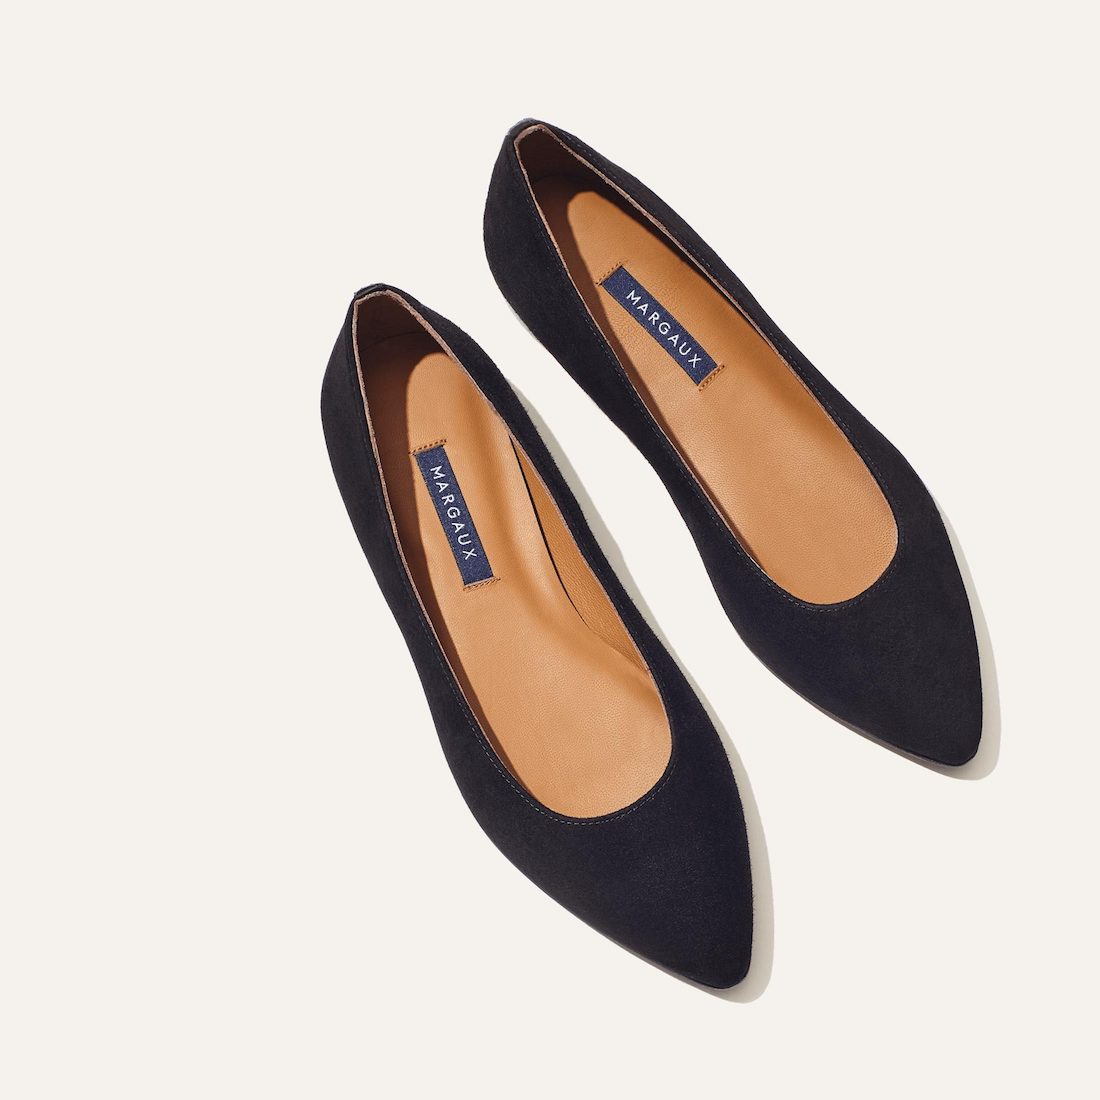 suede pointed toe flat shoe